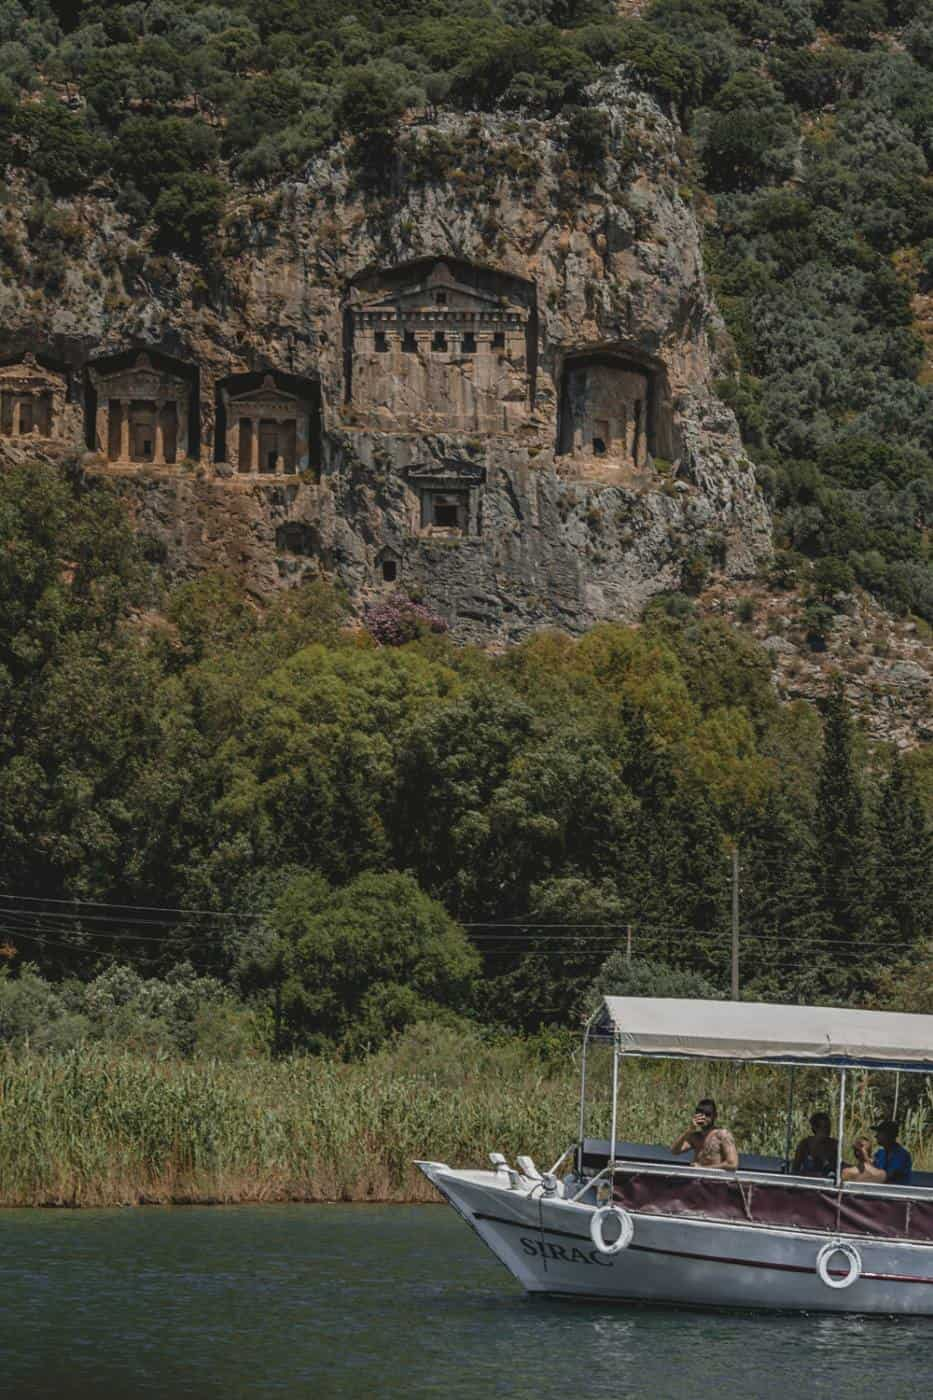 Caves in Dalyan River in Marmaris Turkey